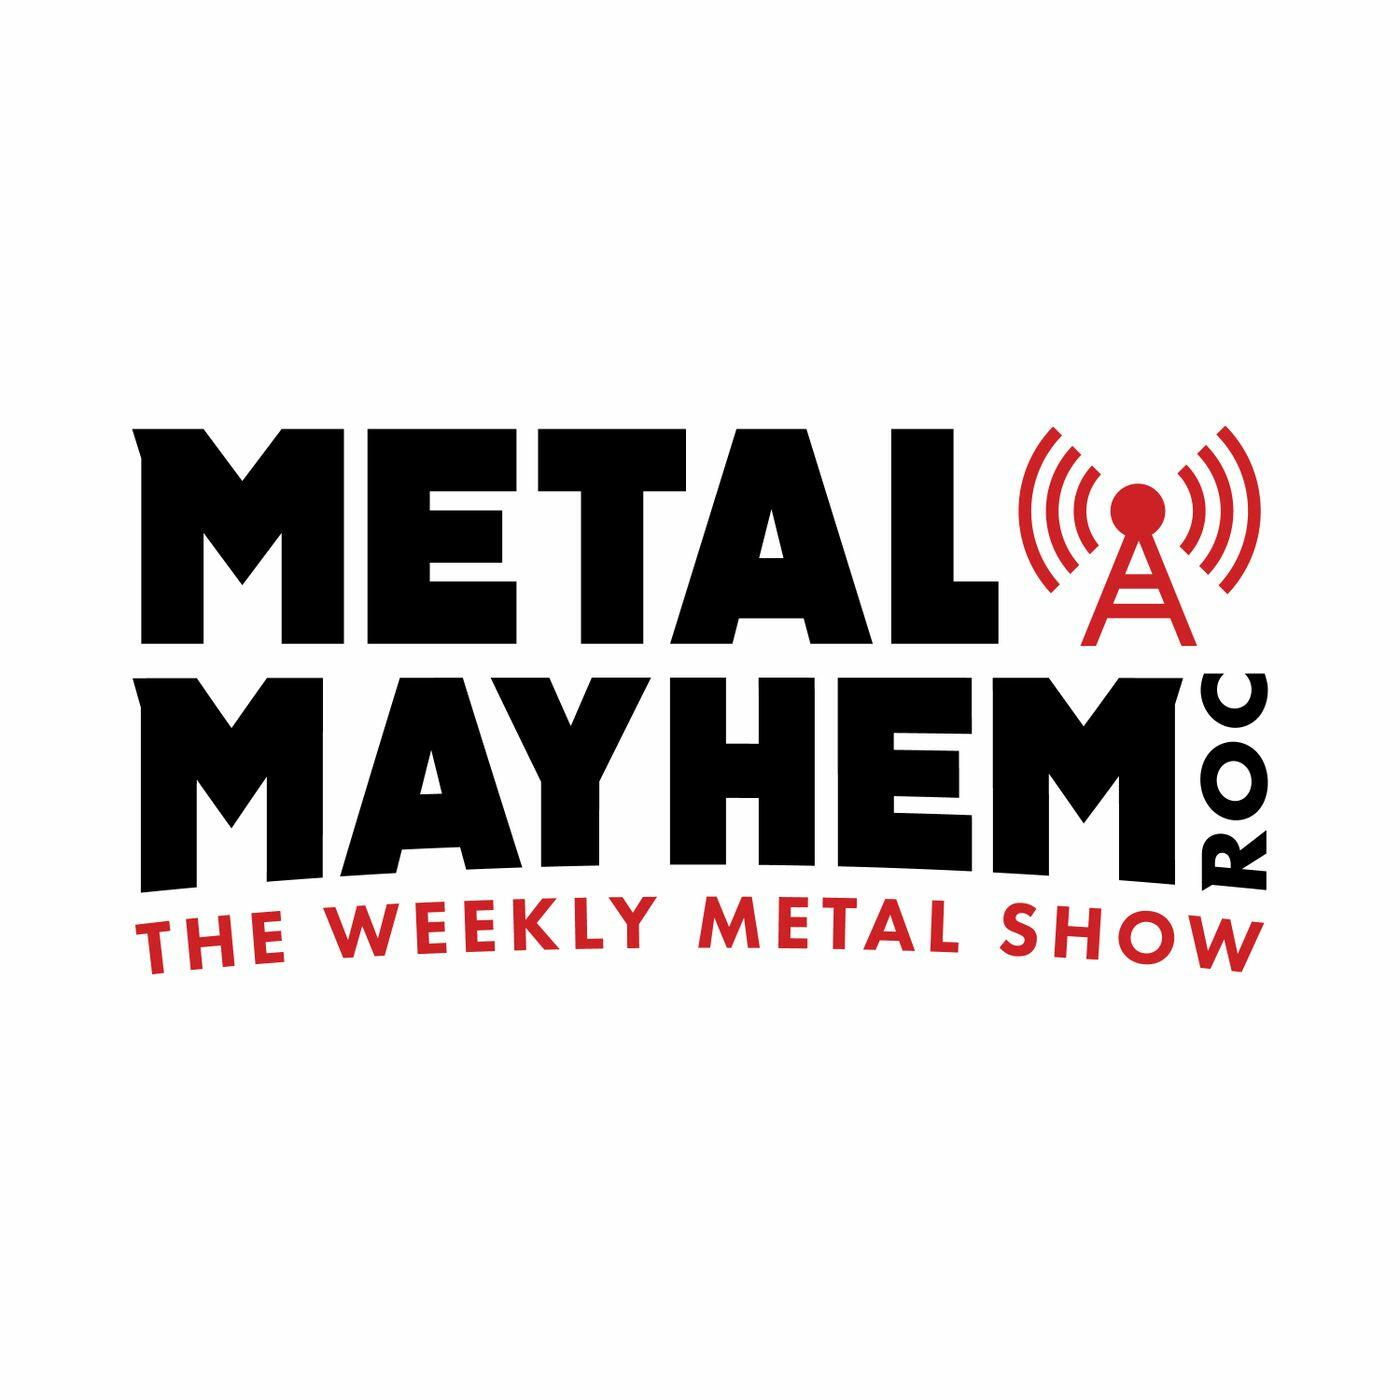 Metal Mayhem ROC - Music News